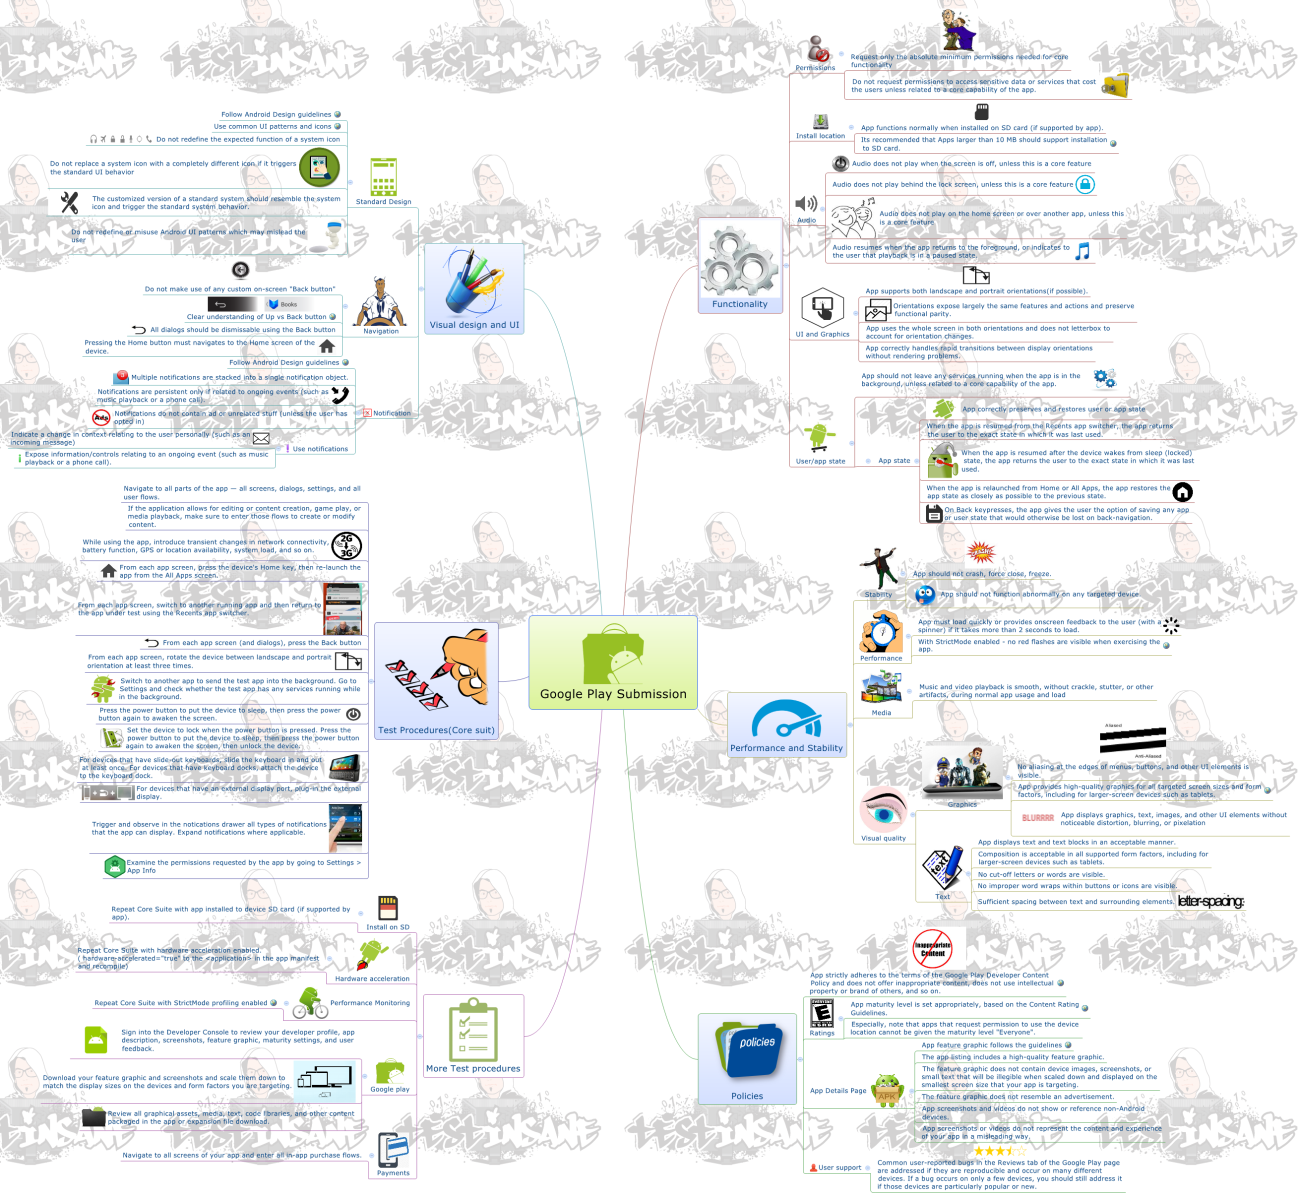 Google Play Submission - Tests & Checks - Human Interface Guidelines Mindmap